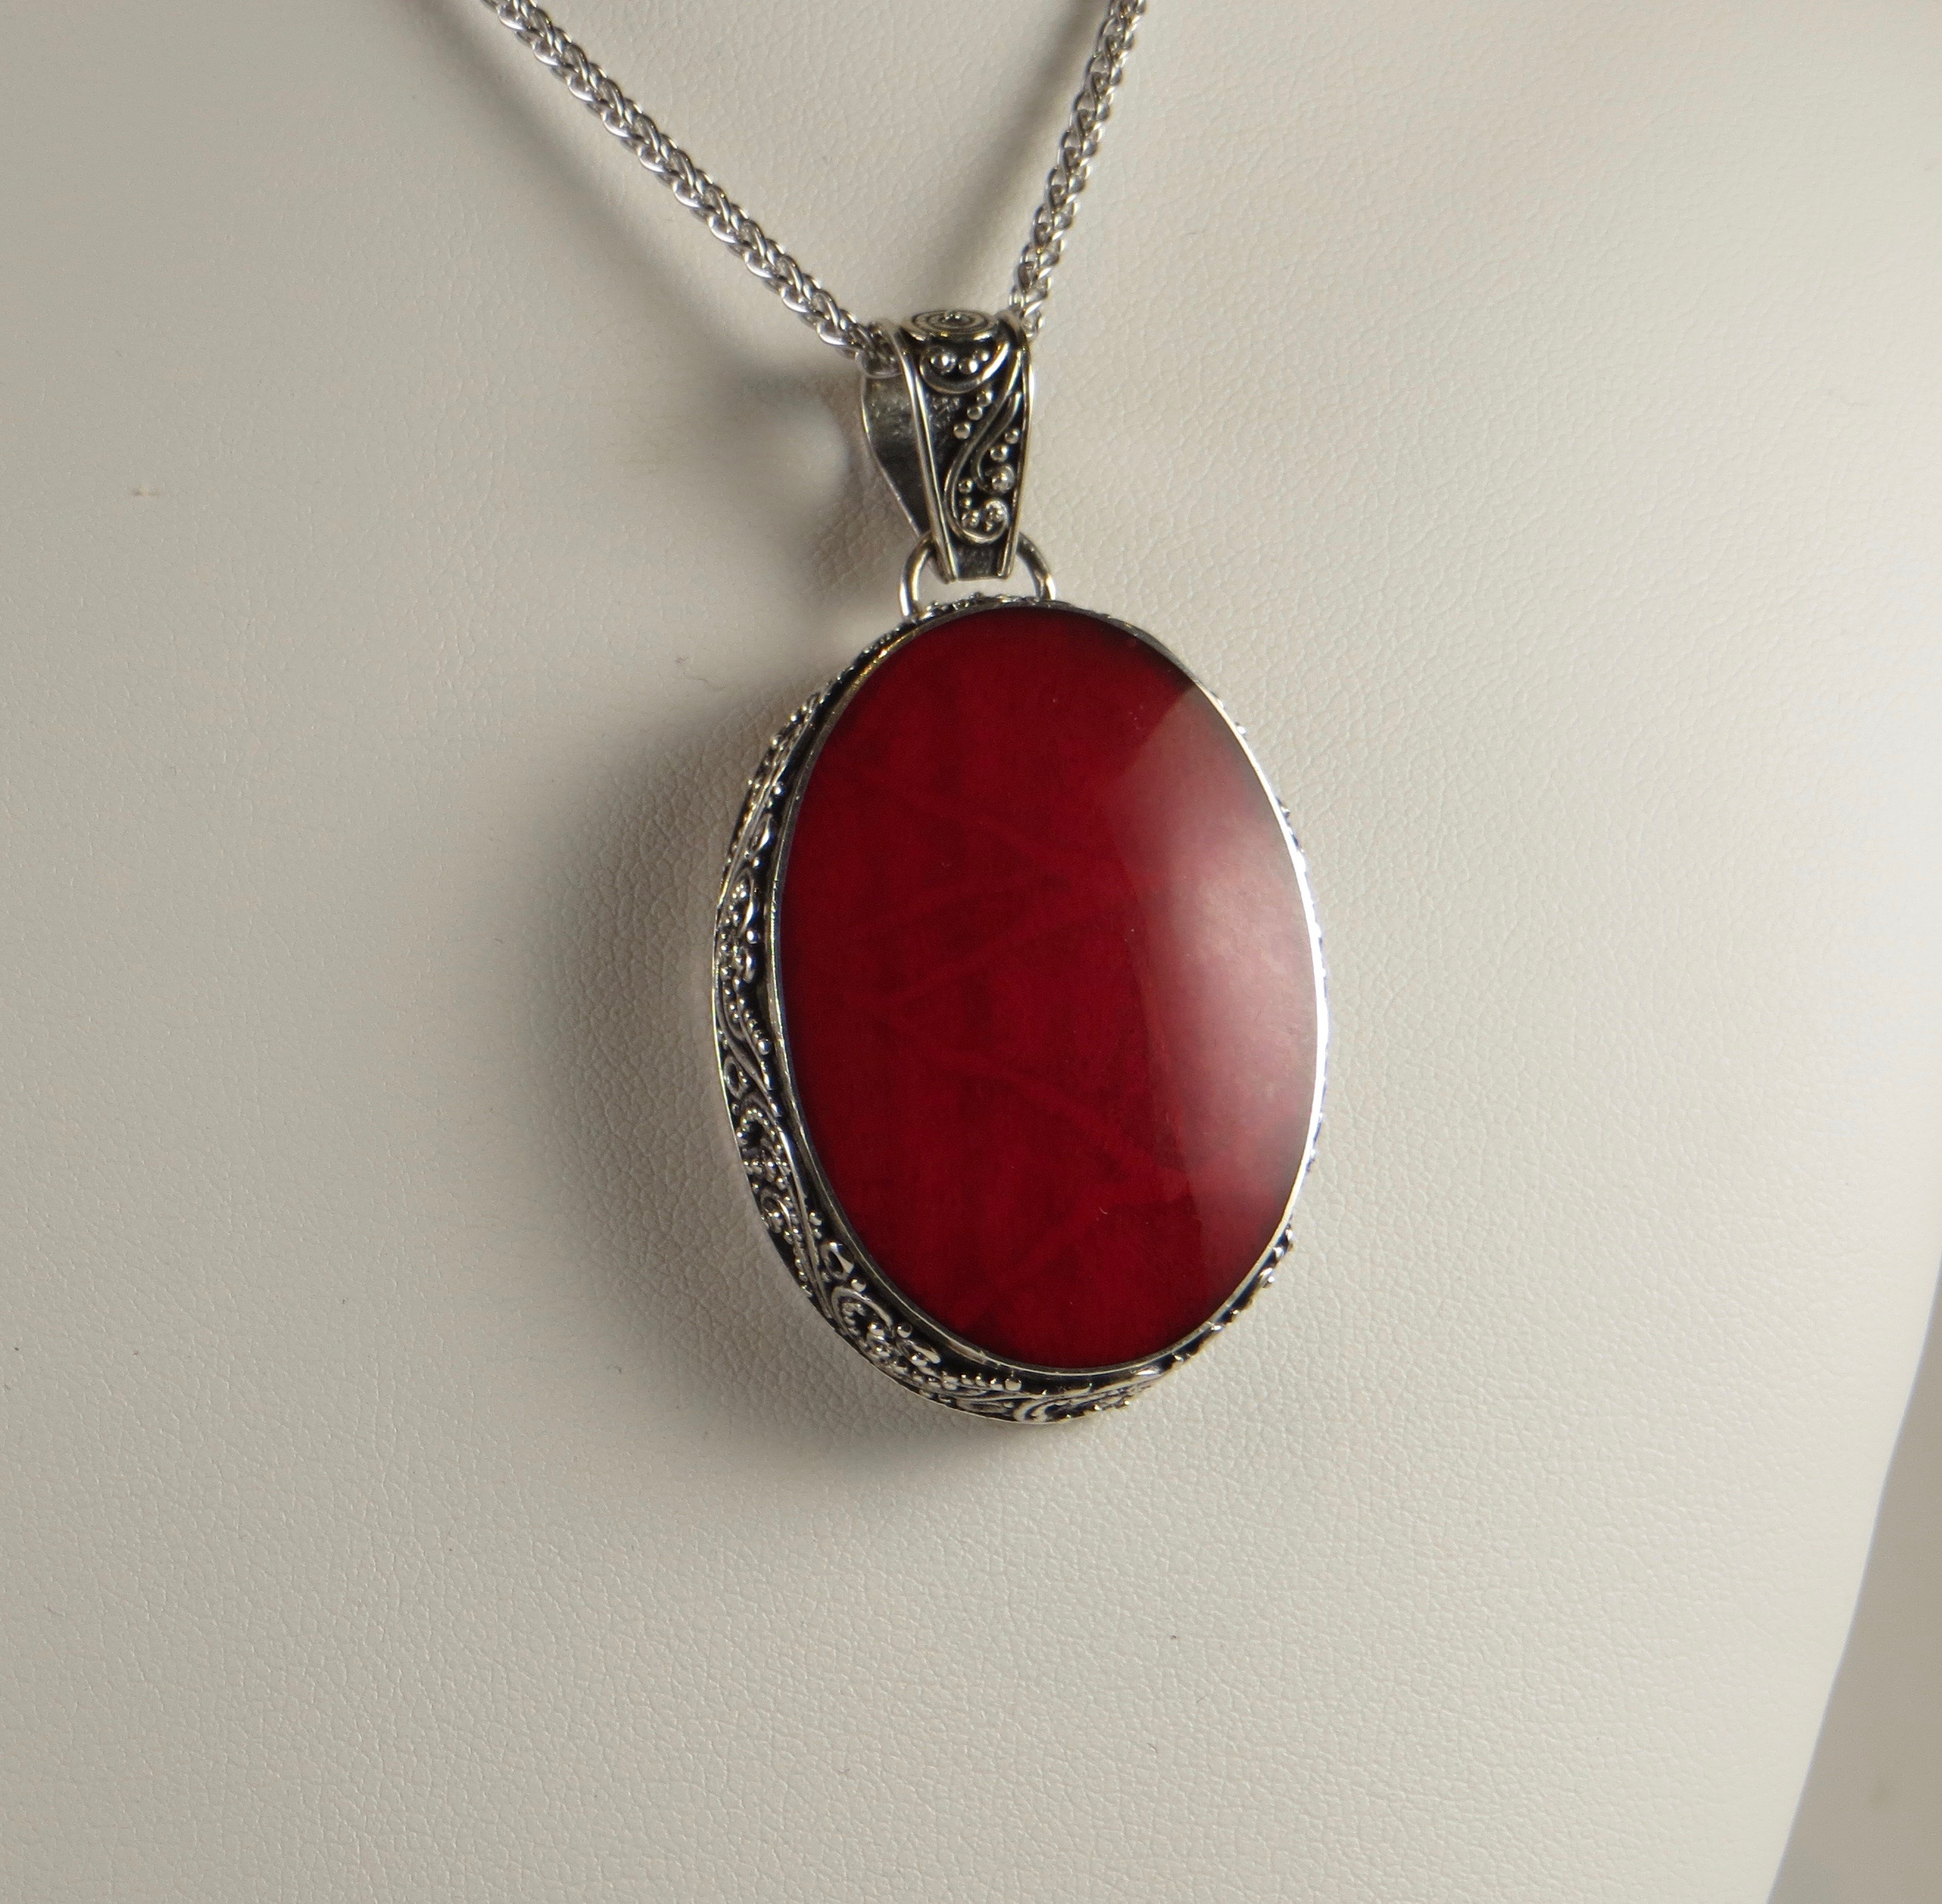 genuine pendant red coral from mexico sterling silver silverbestbuy